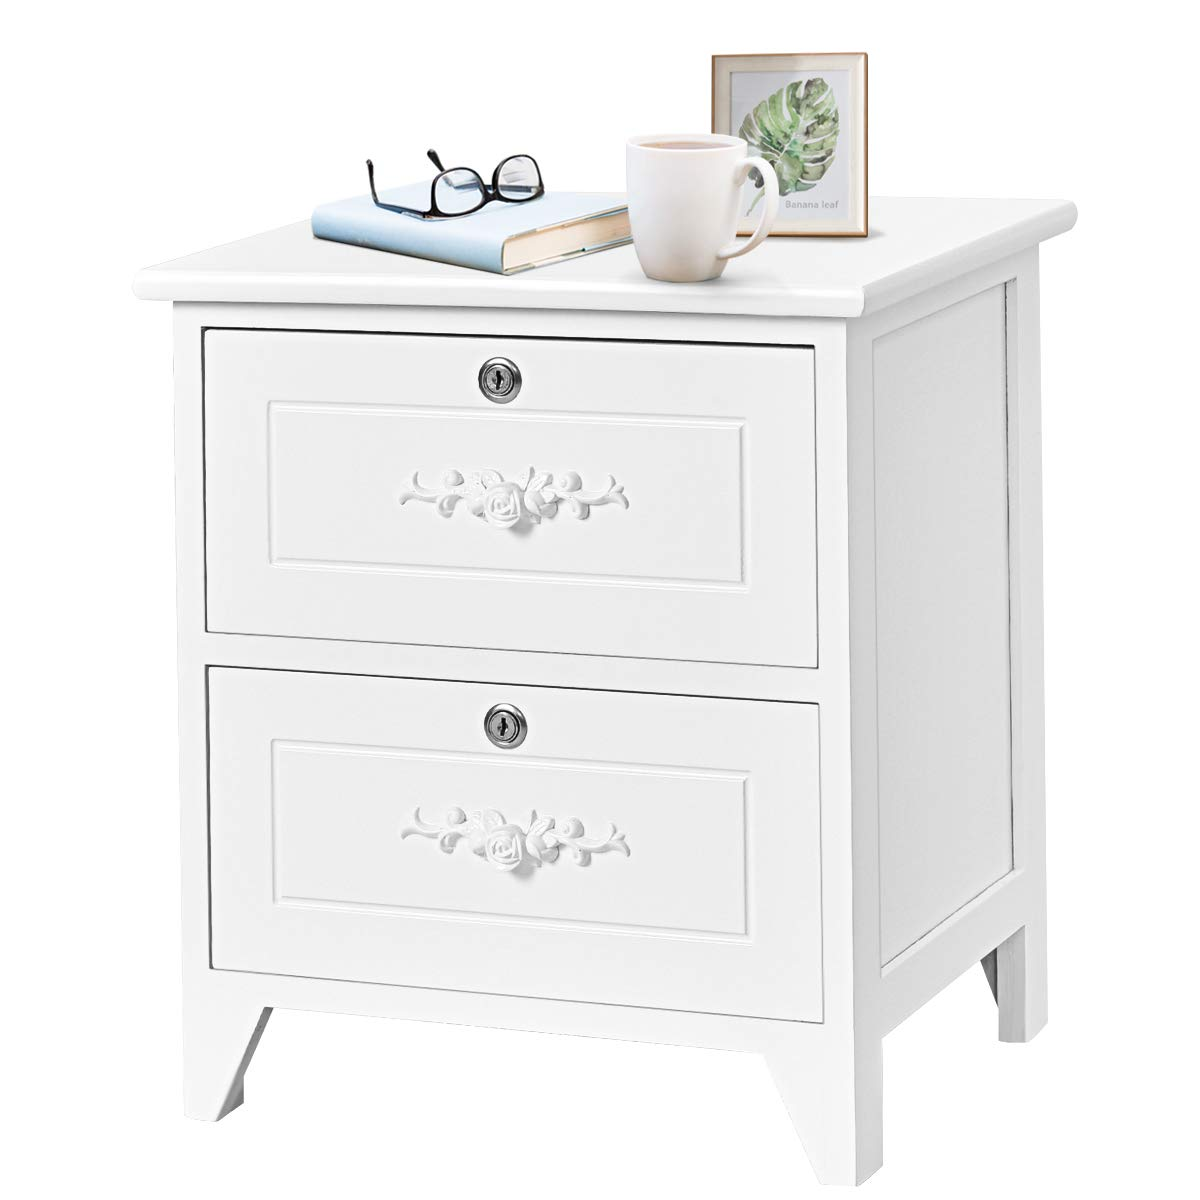 Giantex End Table Wooden W/ 2 Locking Drawers and Handles for Storage and Organize, Solid Structure for Bedroom Beside Sofa Side Nightstand (1, White)